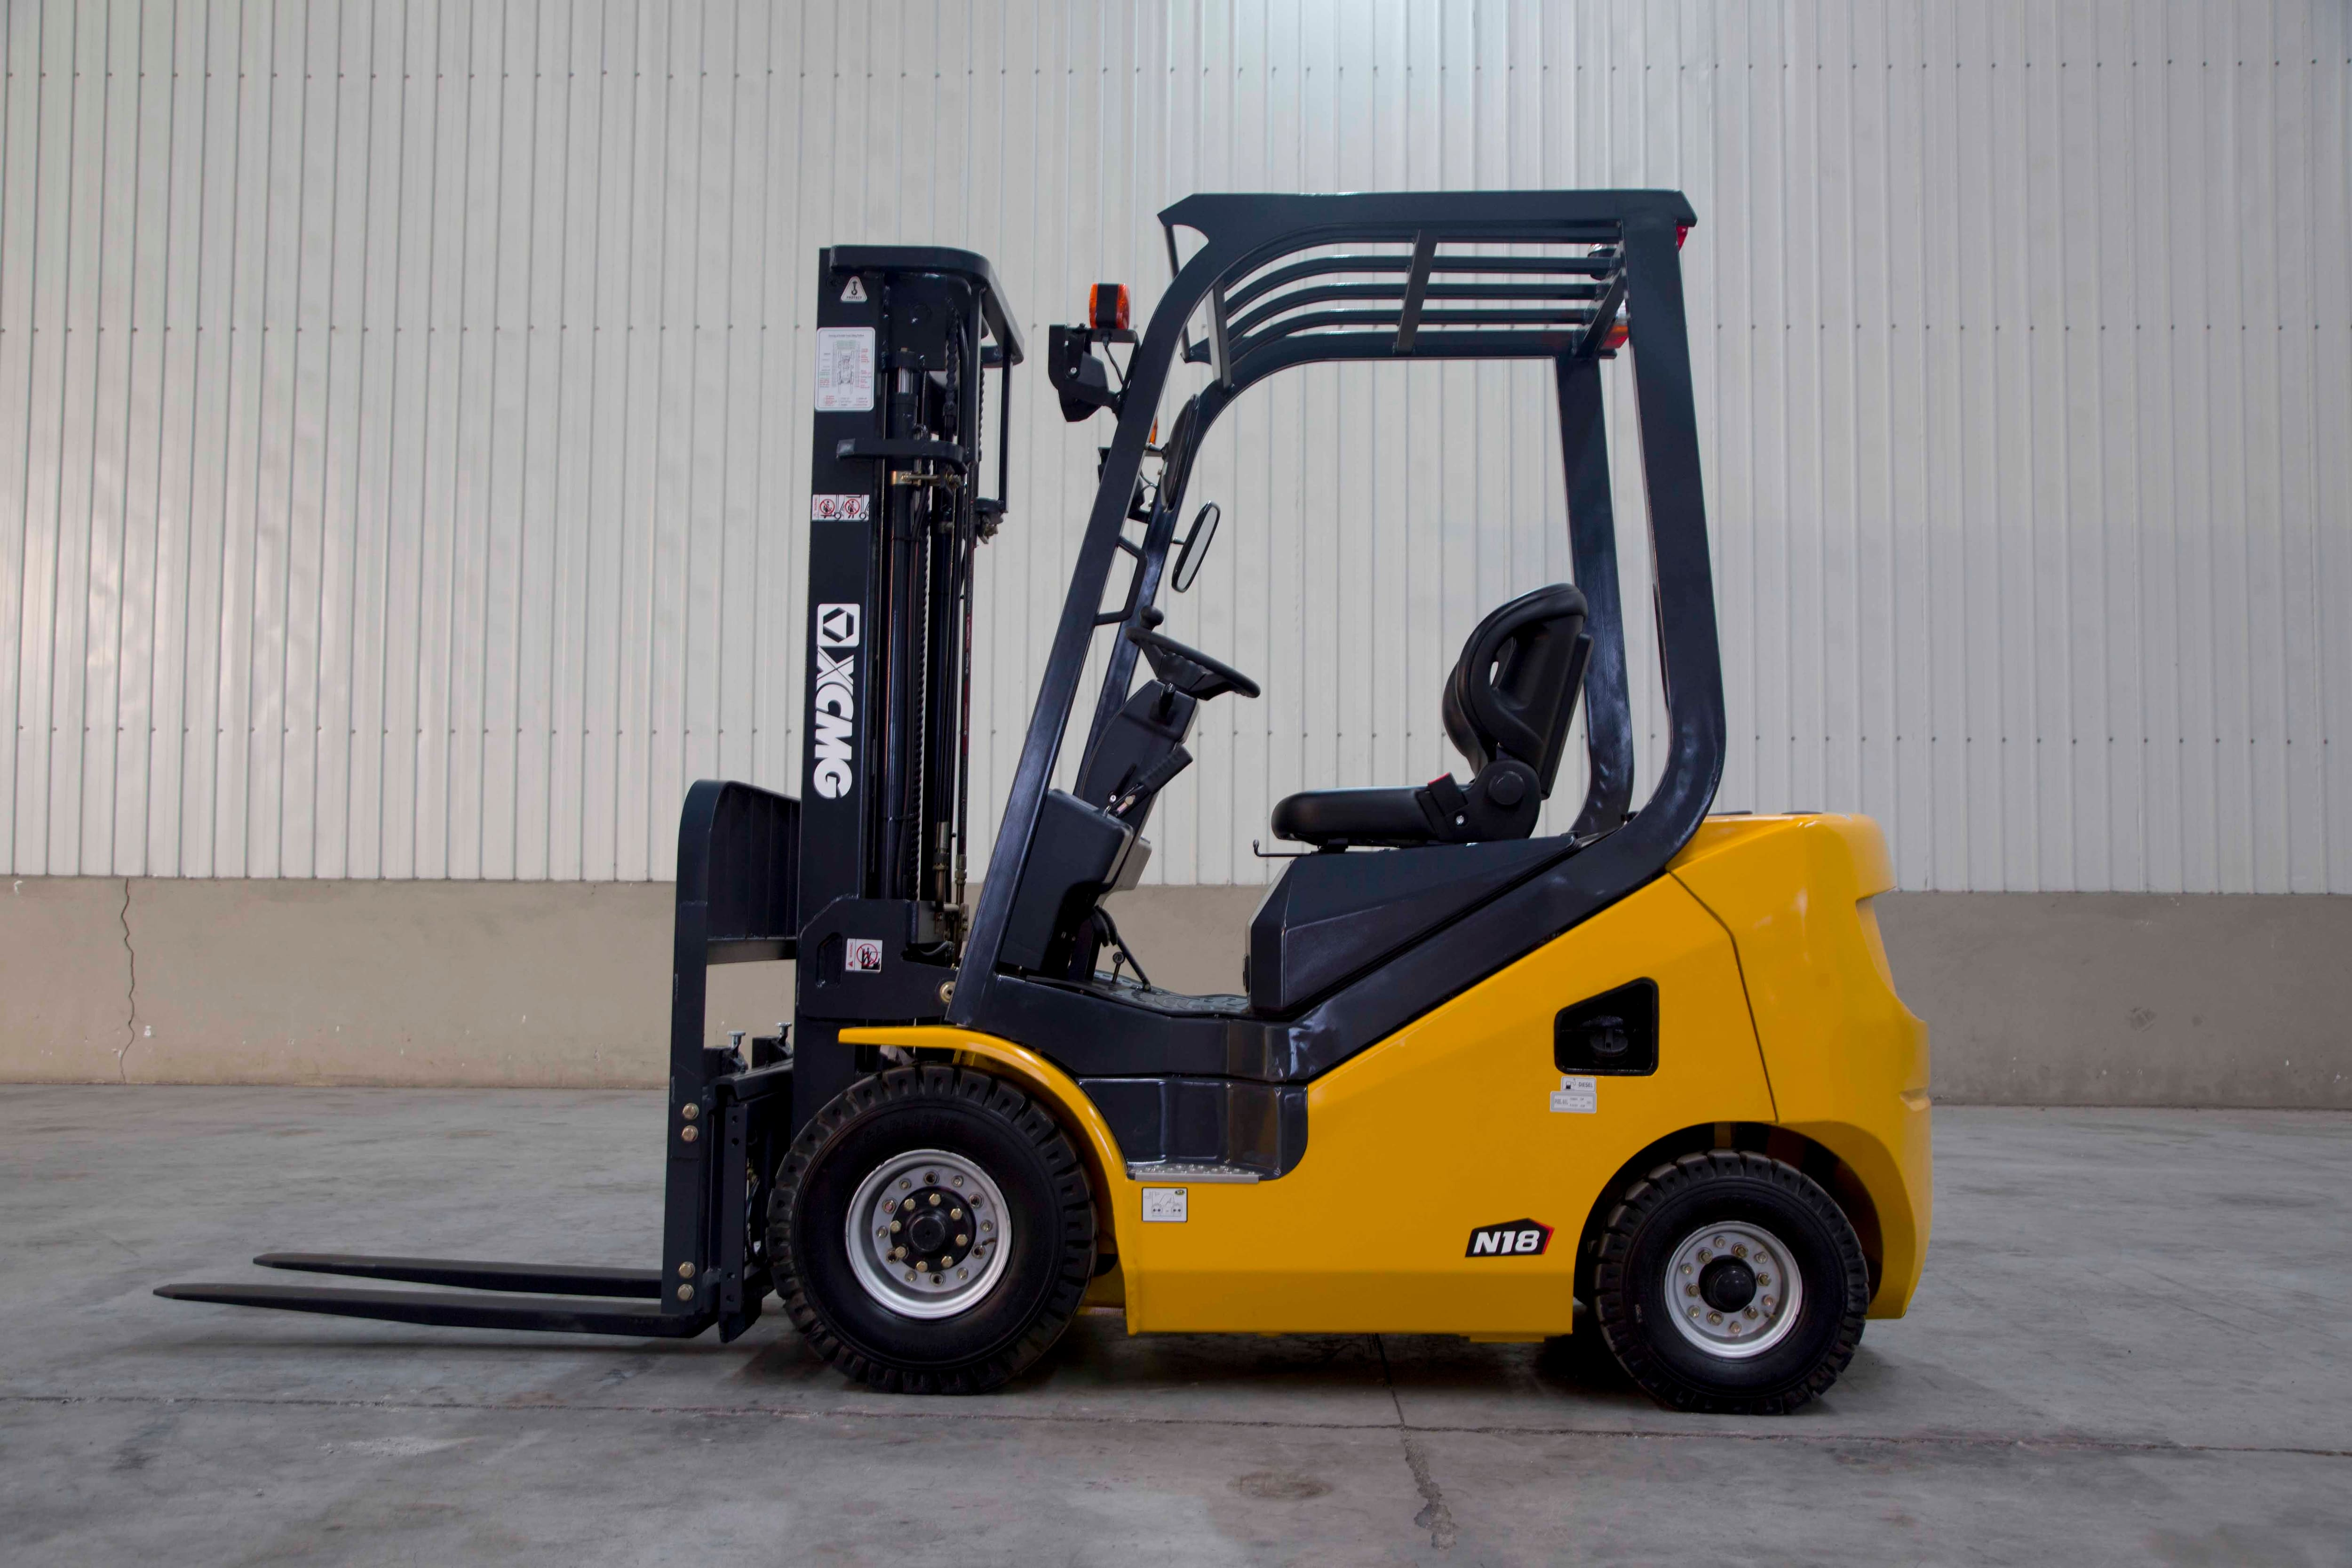 XCMG Official 1.5-1.8T Diesel Forklift Truck for sale